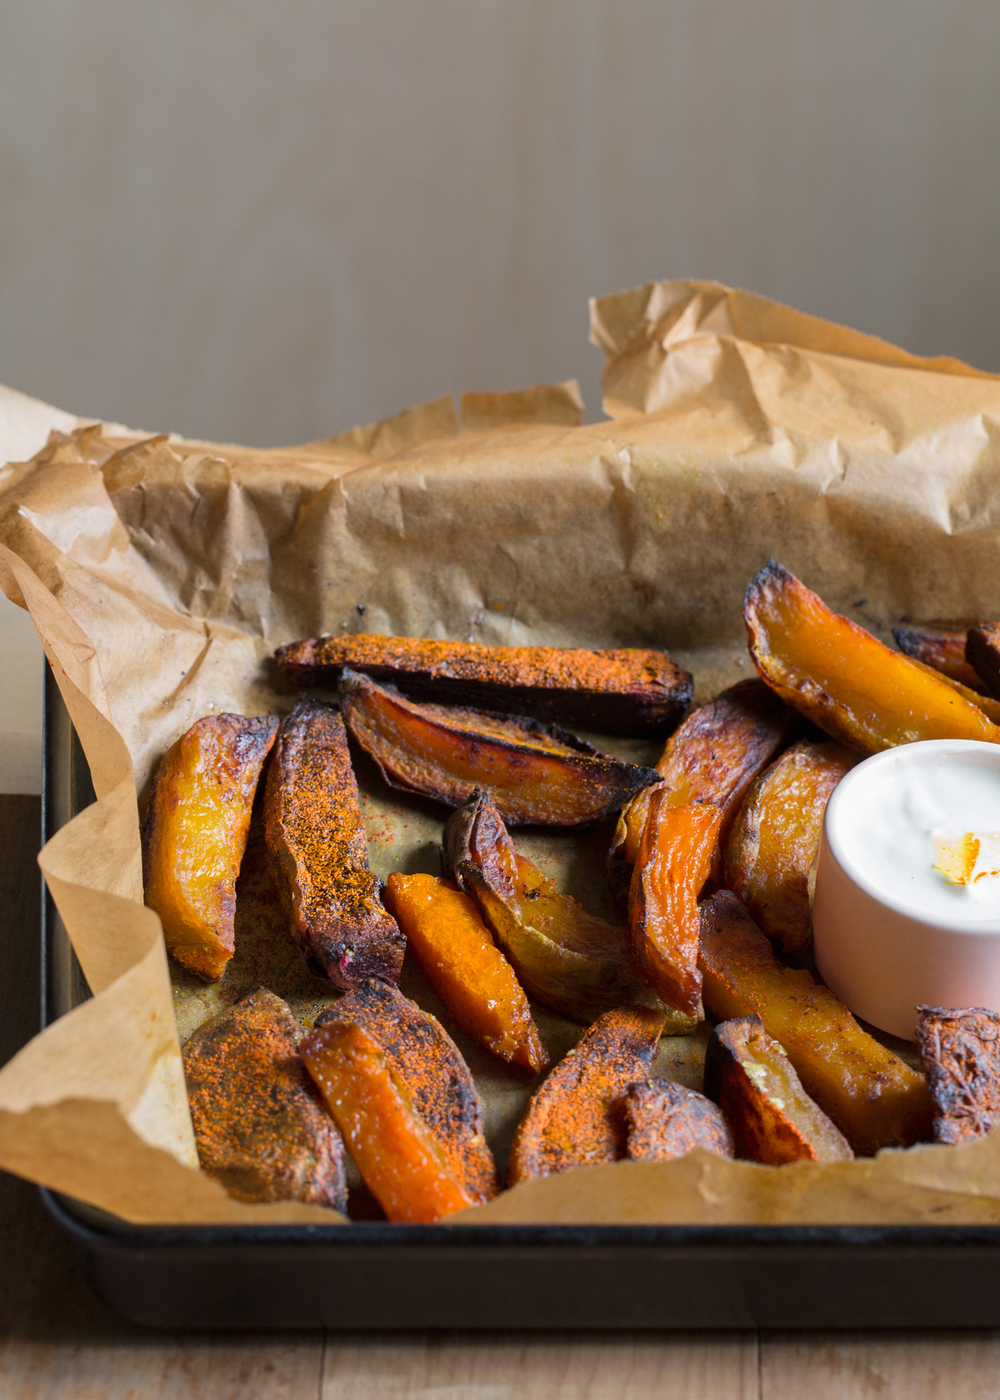 turmeric fries with cashew aioli:  the unbakery app